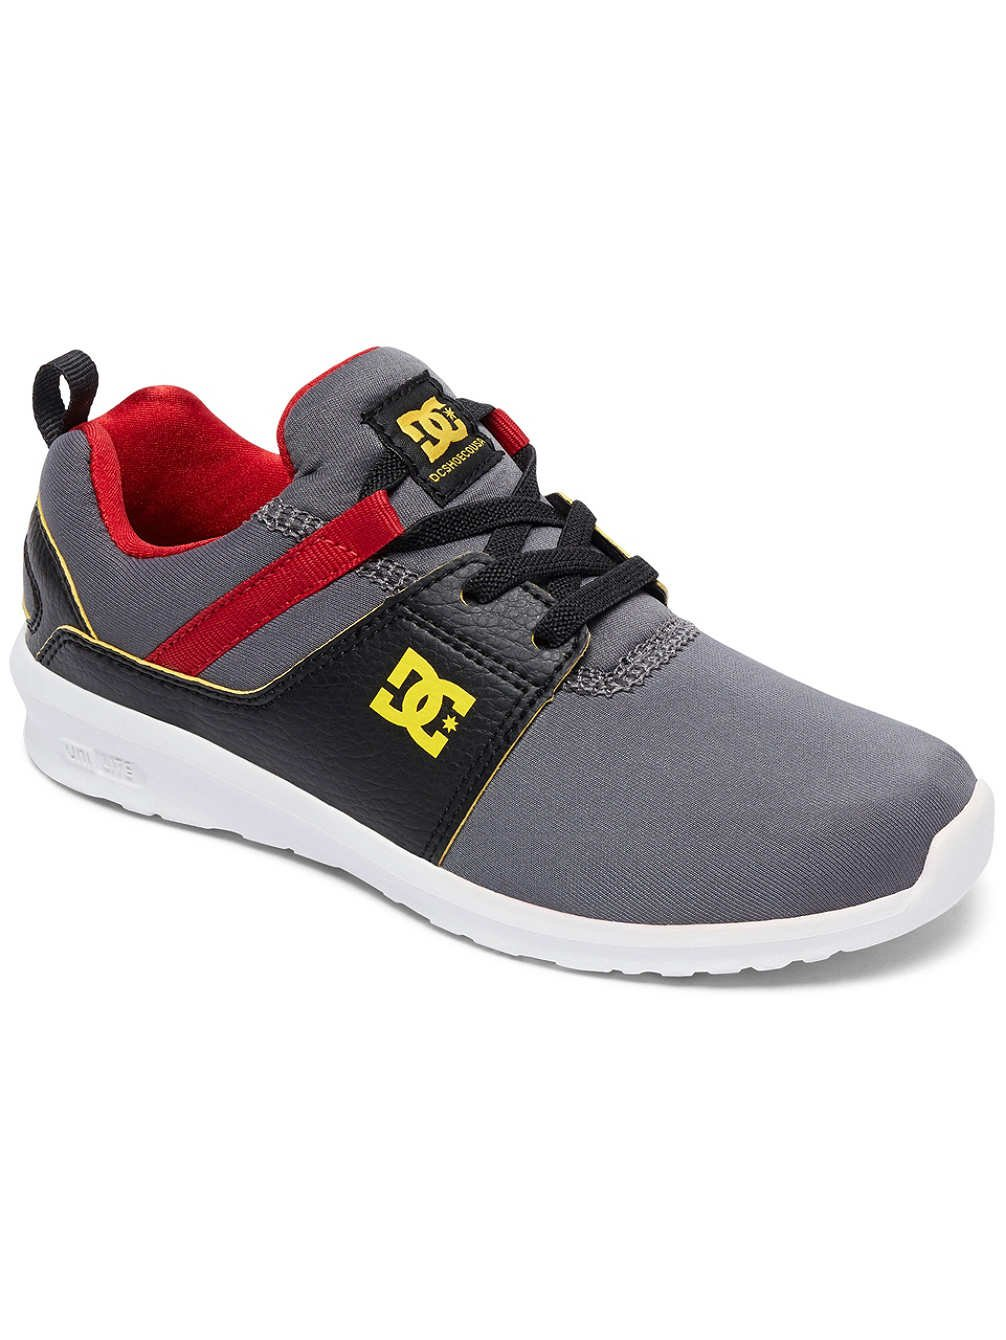 DC Shoes Heathrow SE - Shoes for Boys ADBS700049: Amazon.co.uk: Shoes & Bags